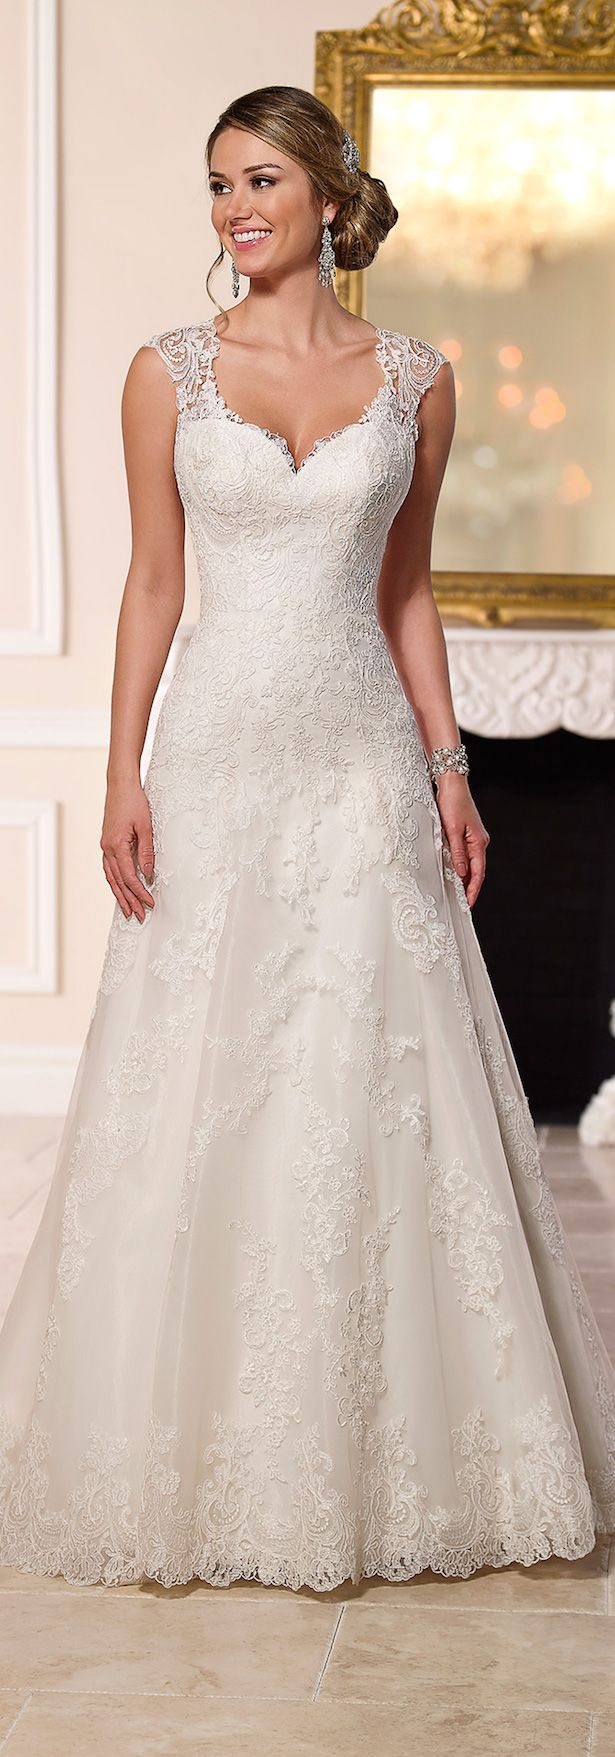 Spring york stella wedding dress